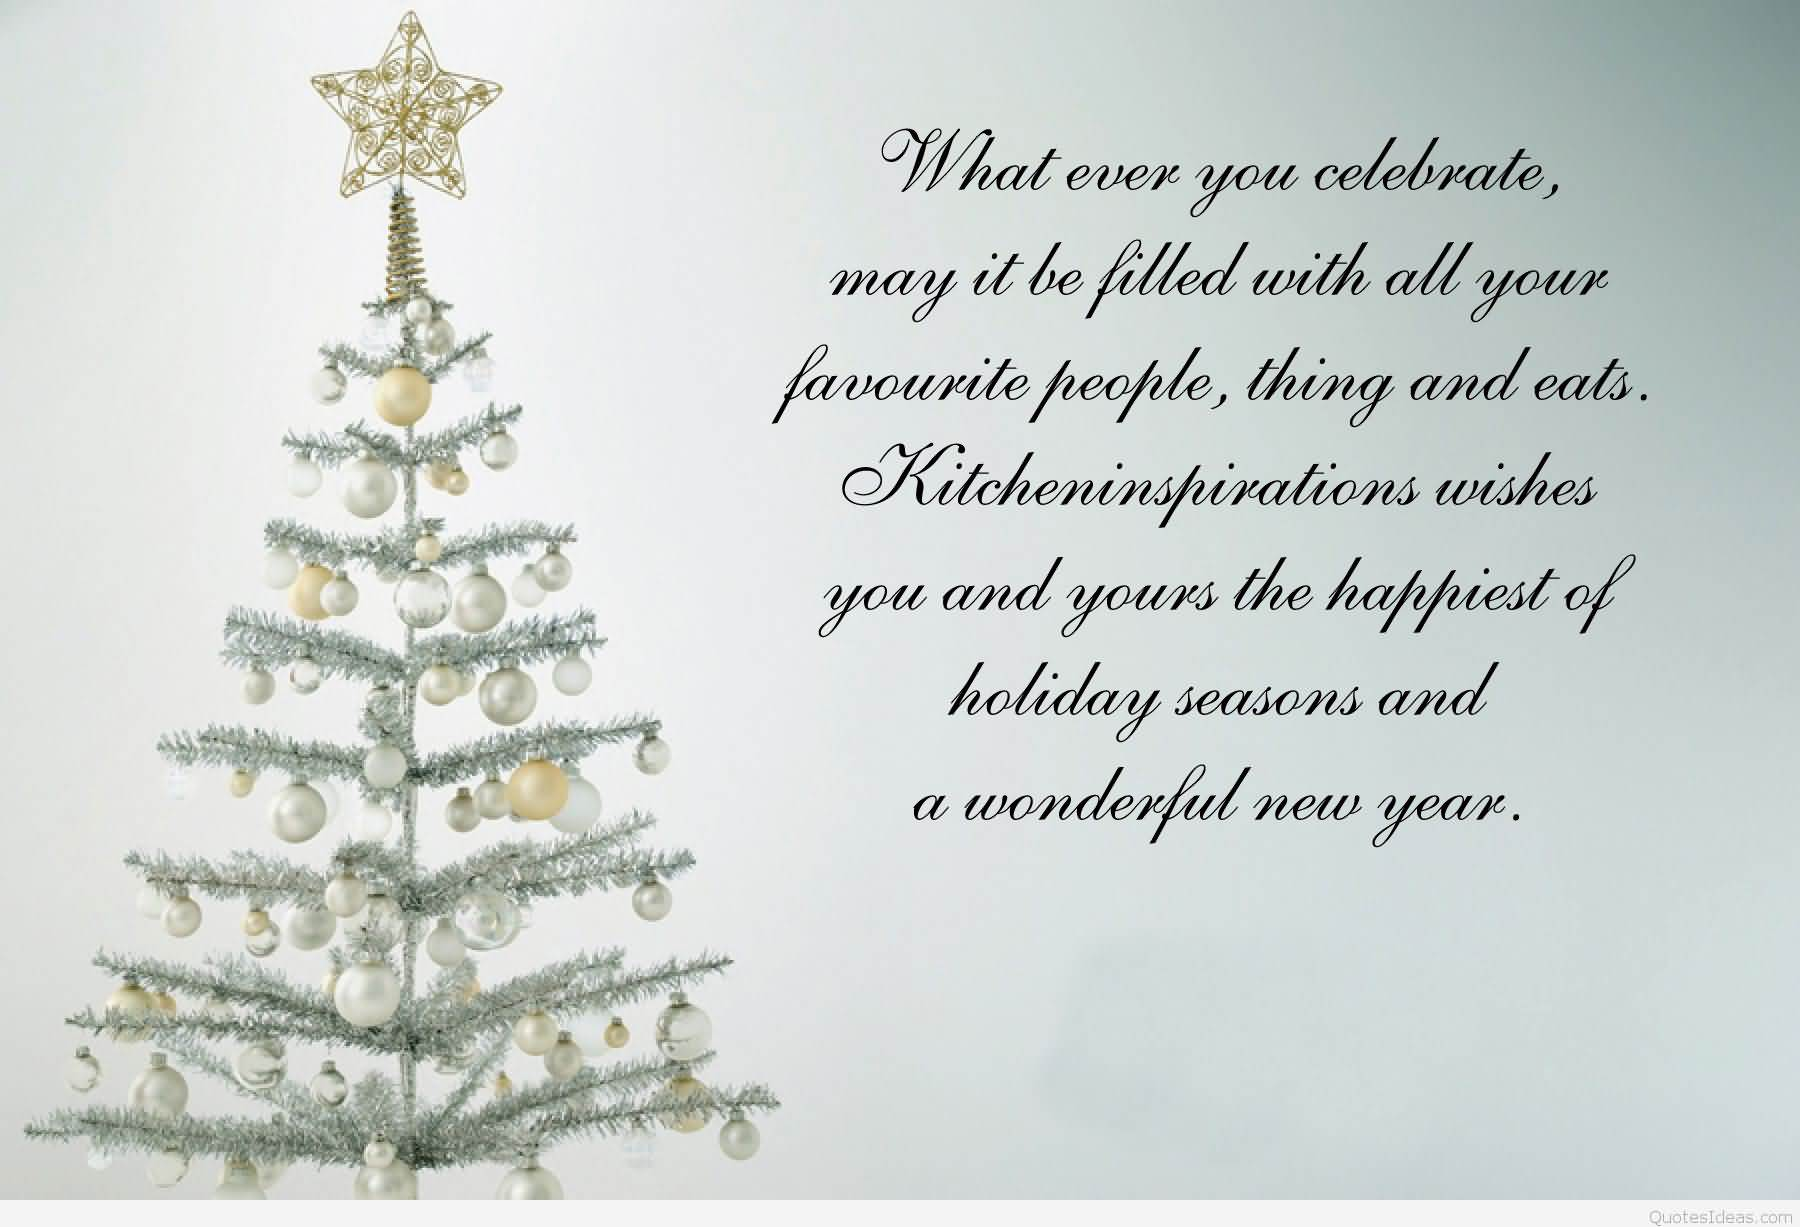 Religious christmas card sayings segerios segerios what ever you celebrate may it be filled with all your favorite a wonderful new year kristyandbryce Gallery